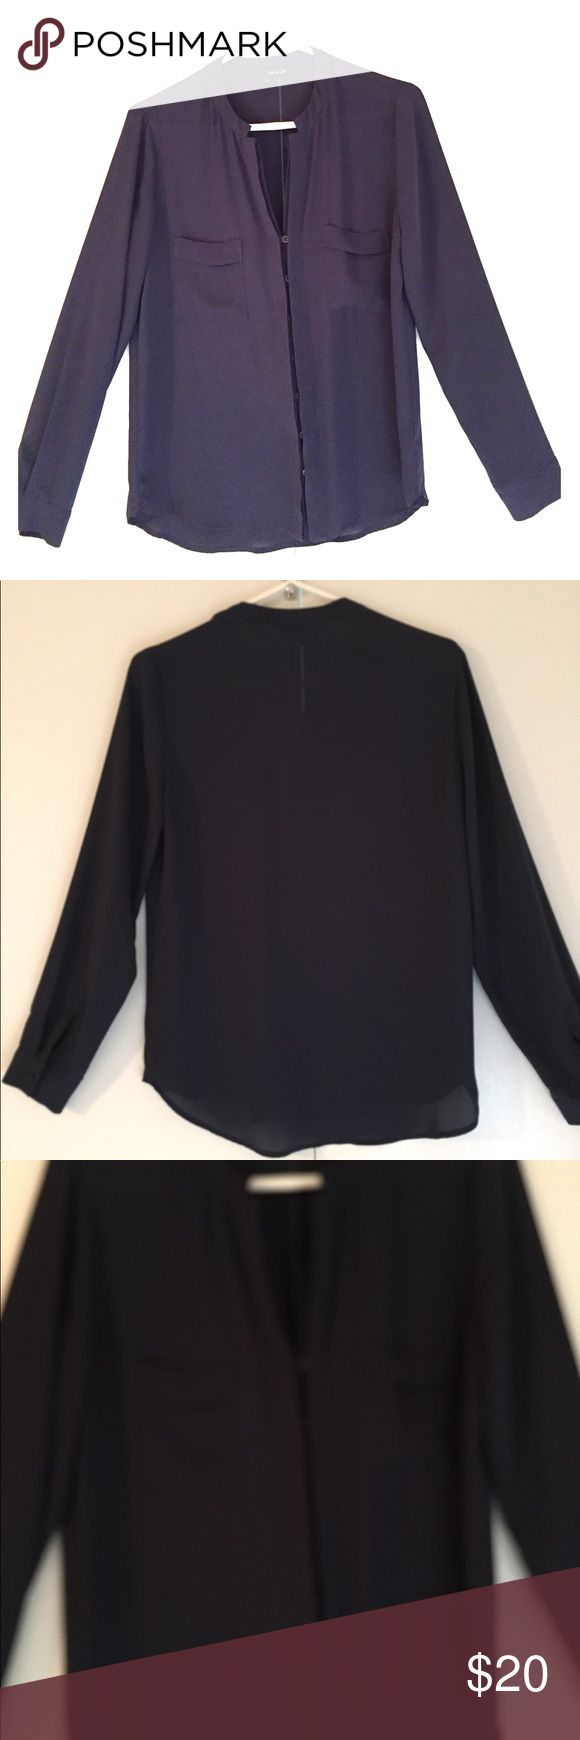 🌟Ro&De BLUE BLOUSE🌟 Ro & De Blue hidden button blouse. Size small. Adorable with slacks or jeans! Amazing condition! Purchased at Nordstrom Department Store! Ro & De Tops Blouses